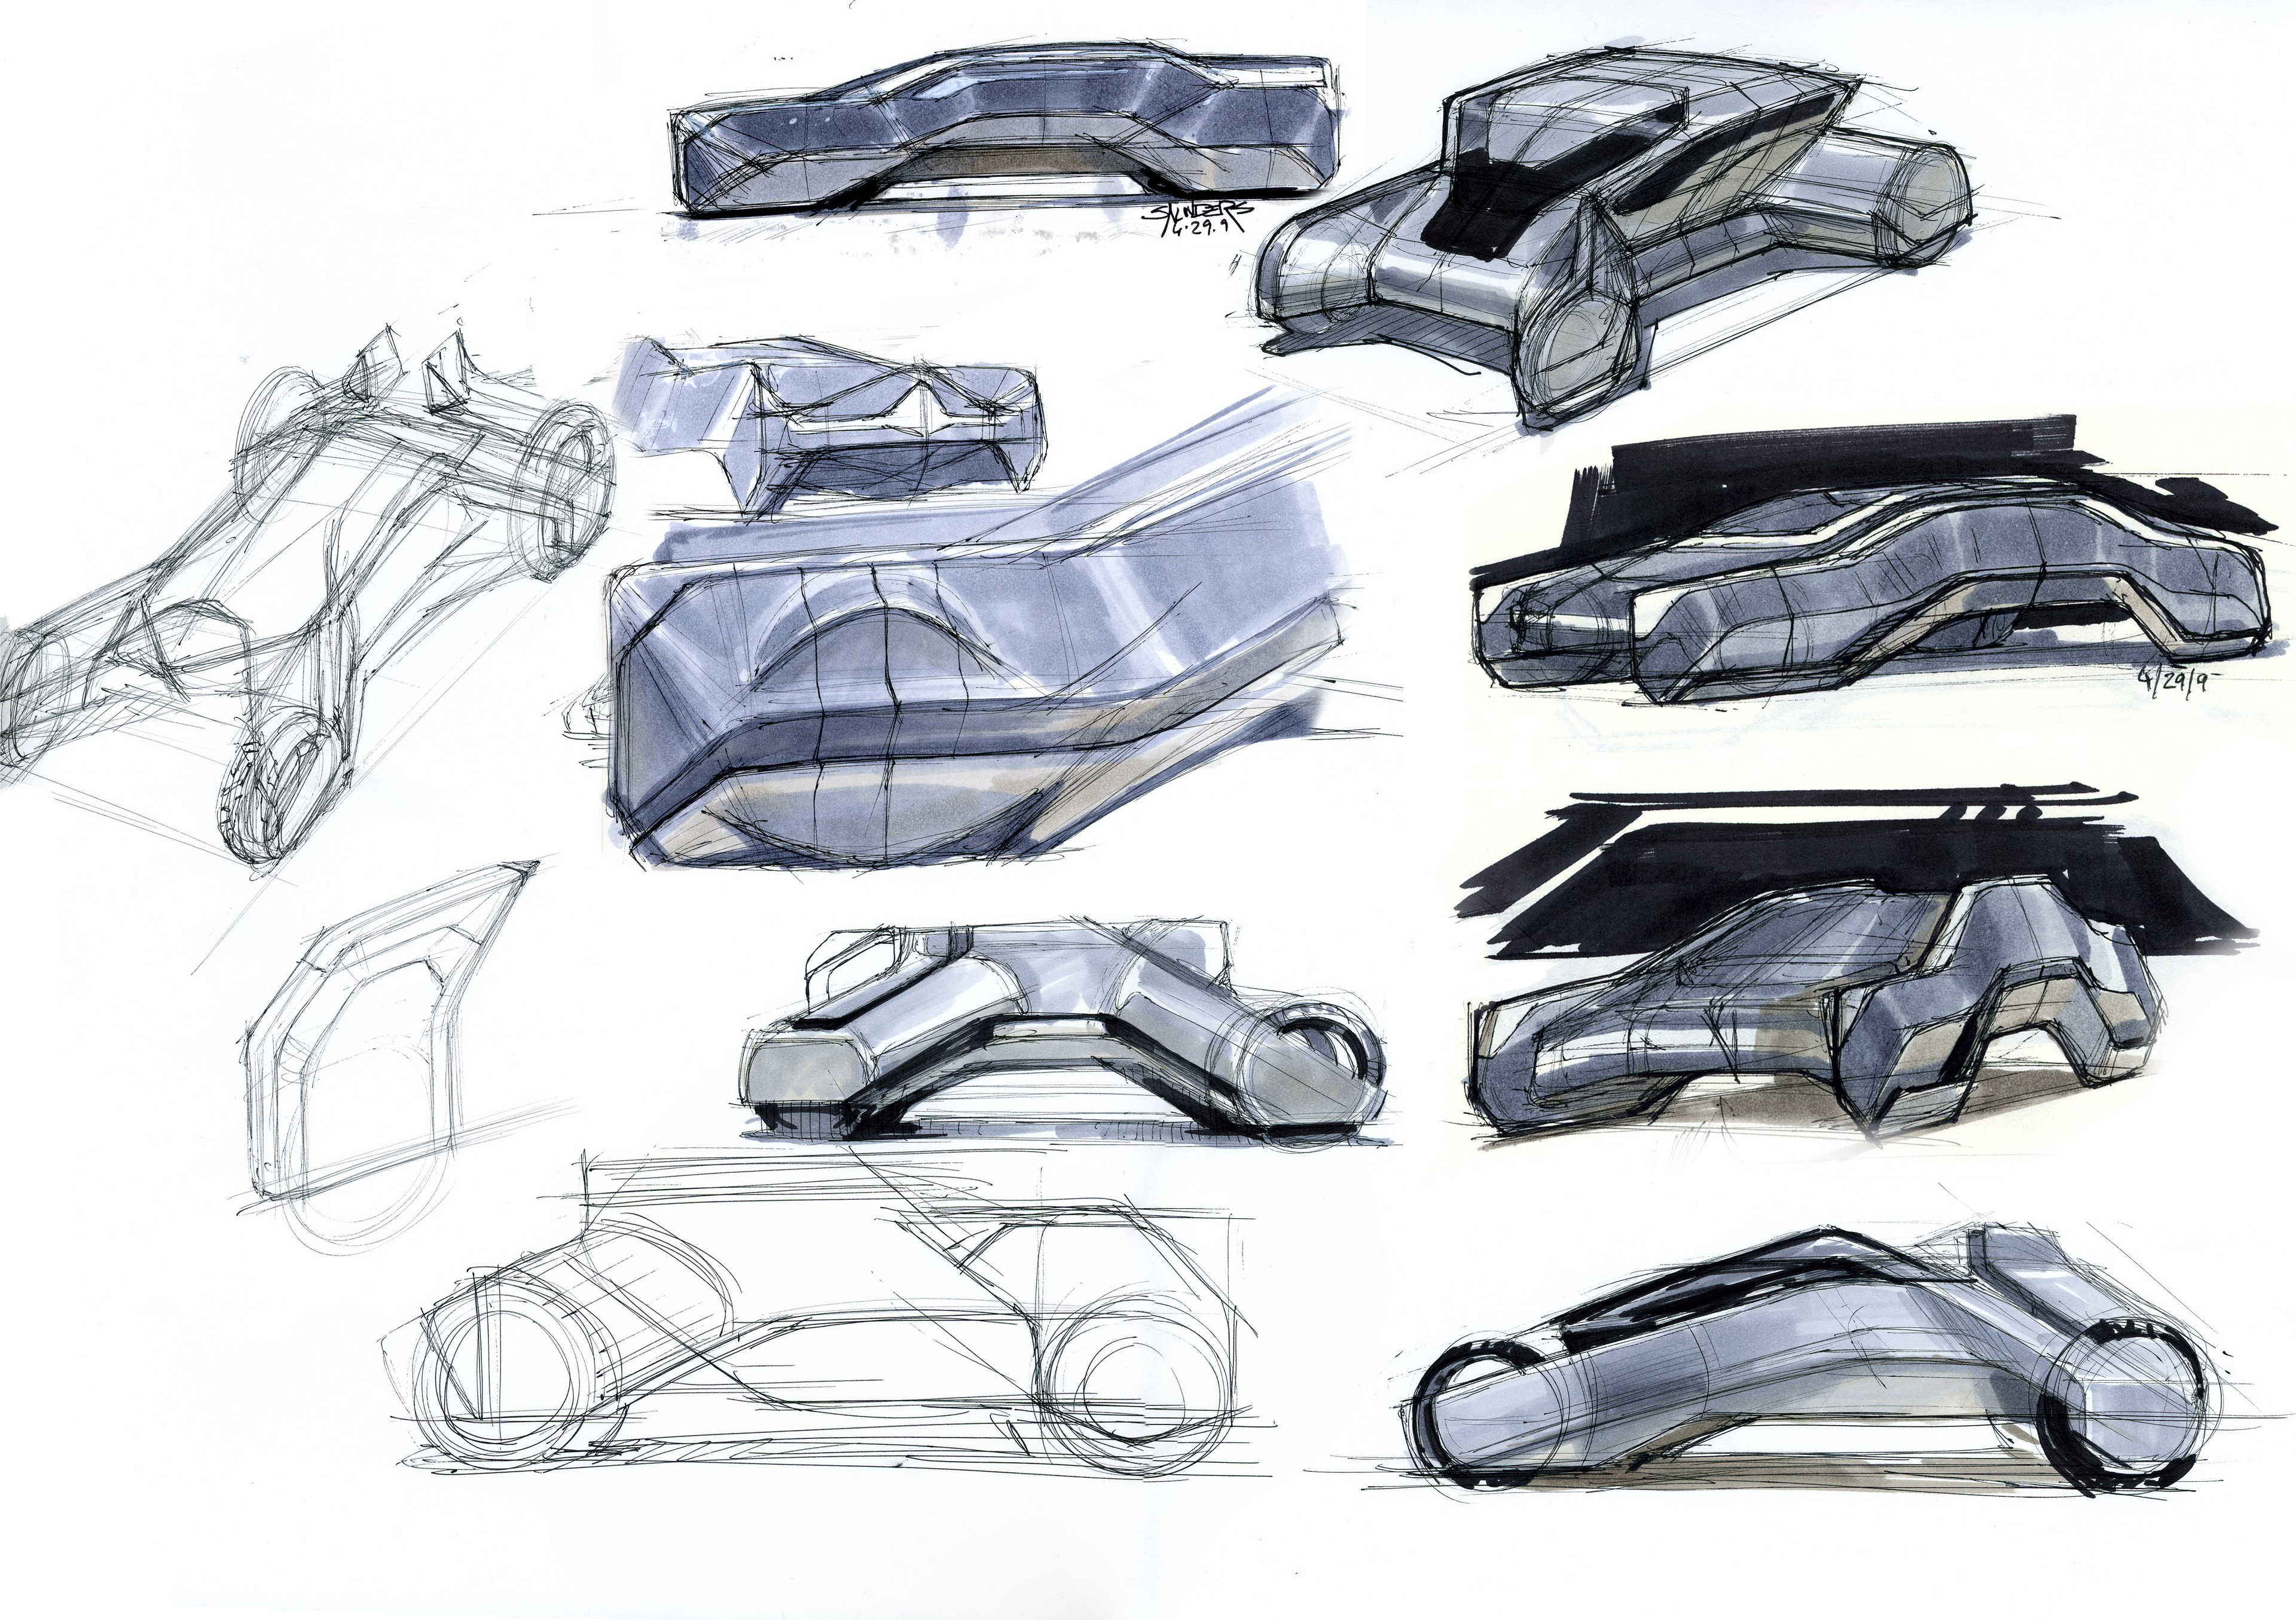 A page of rough marker sketches for Tron background vehicles.